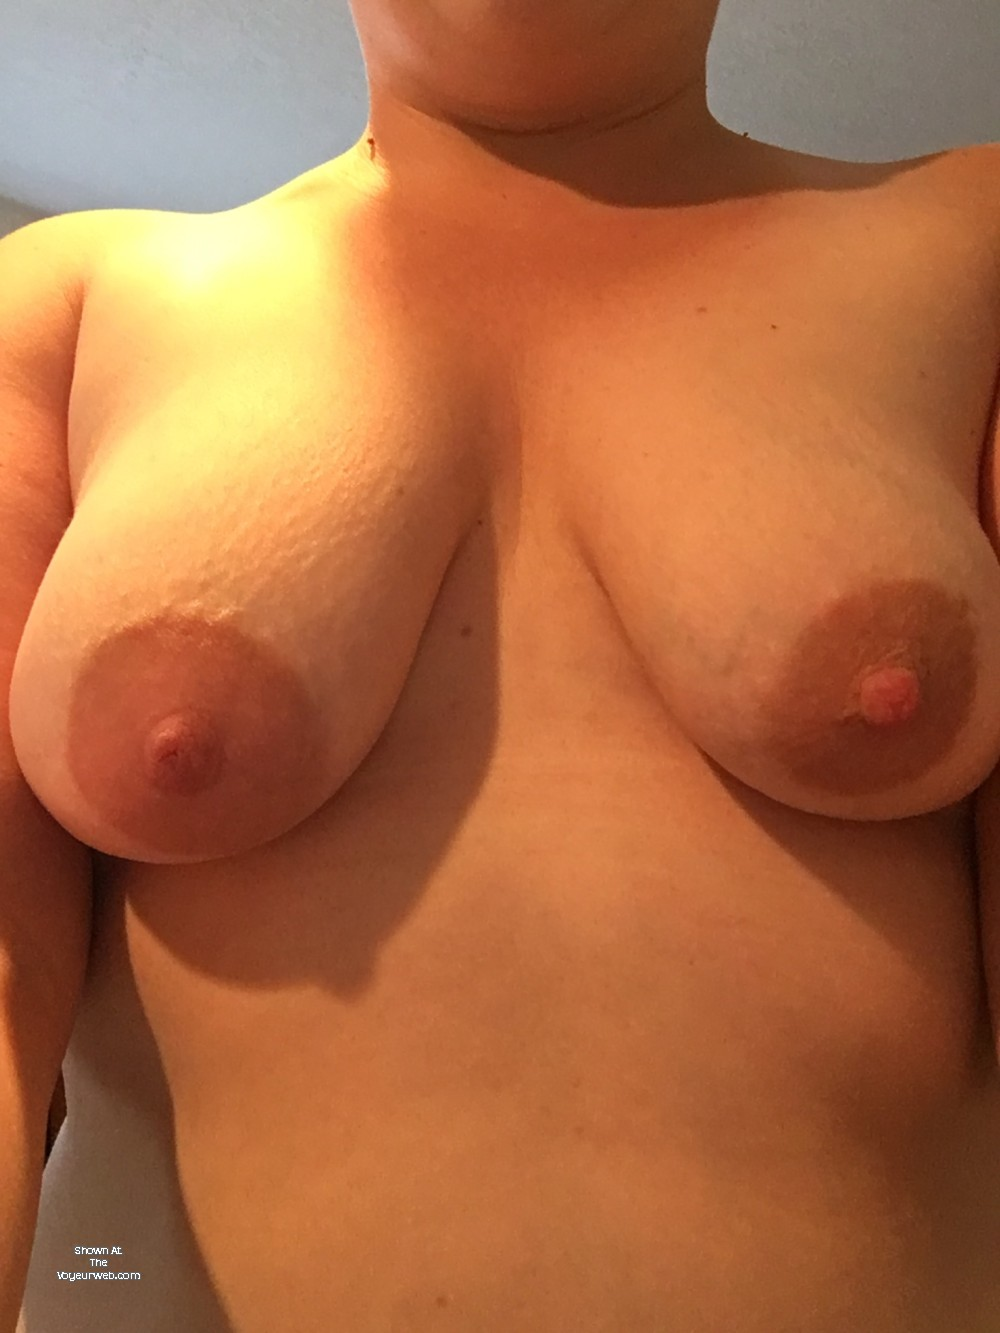 Pic #1Medium tits of my wife - Aly84